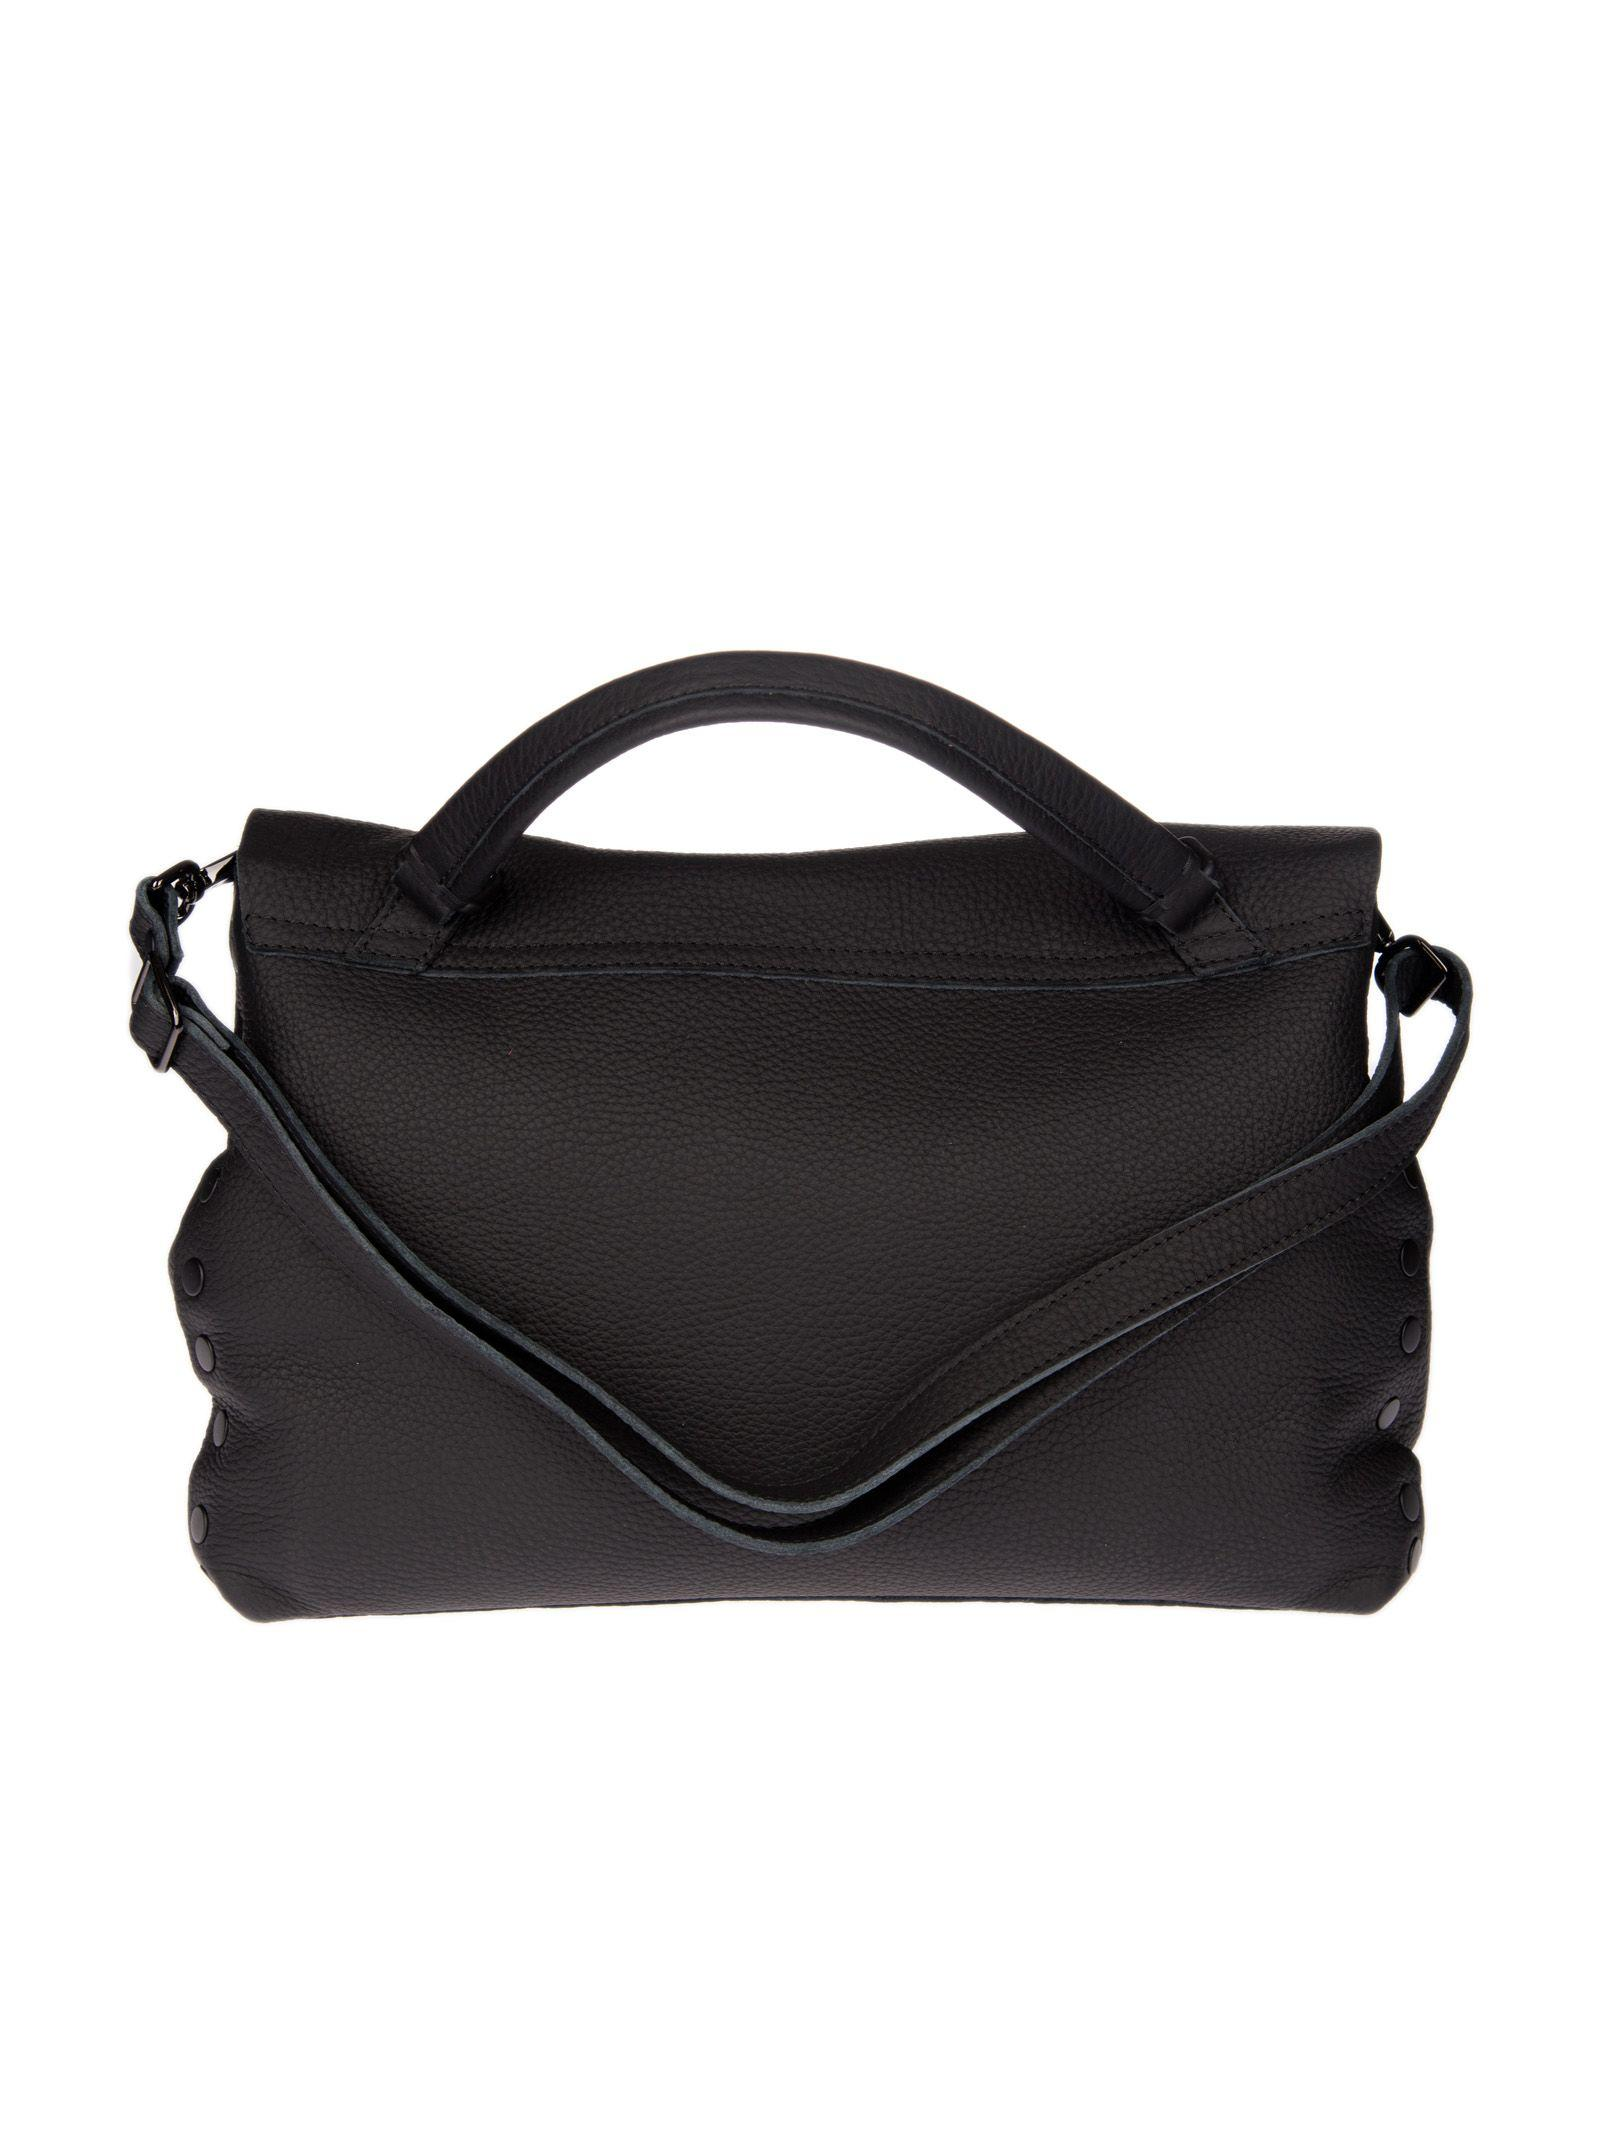 Zanellato Medium Postina Tote In Black